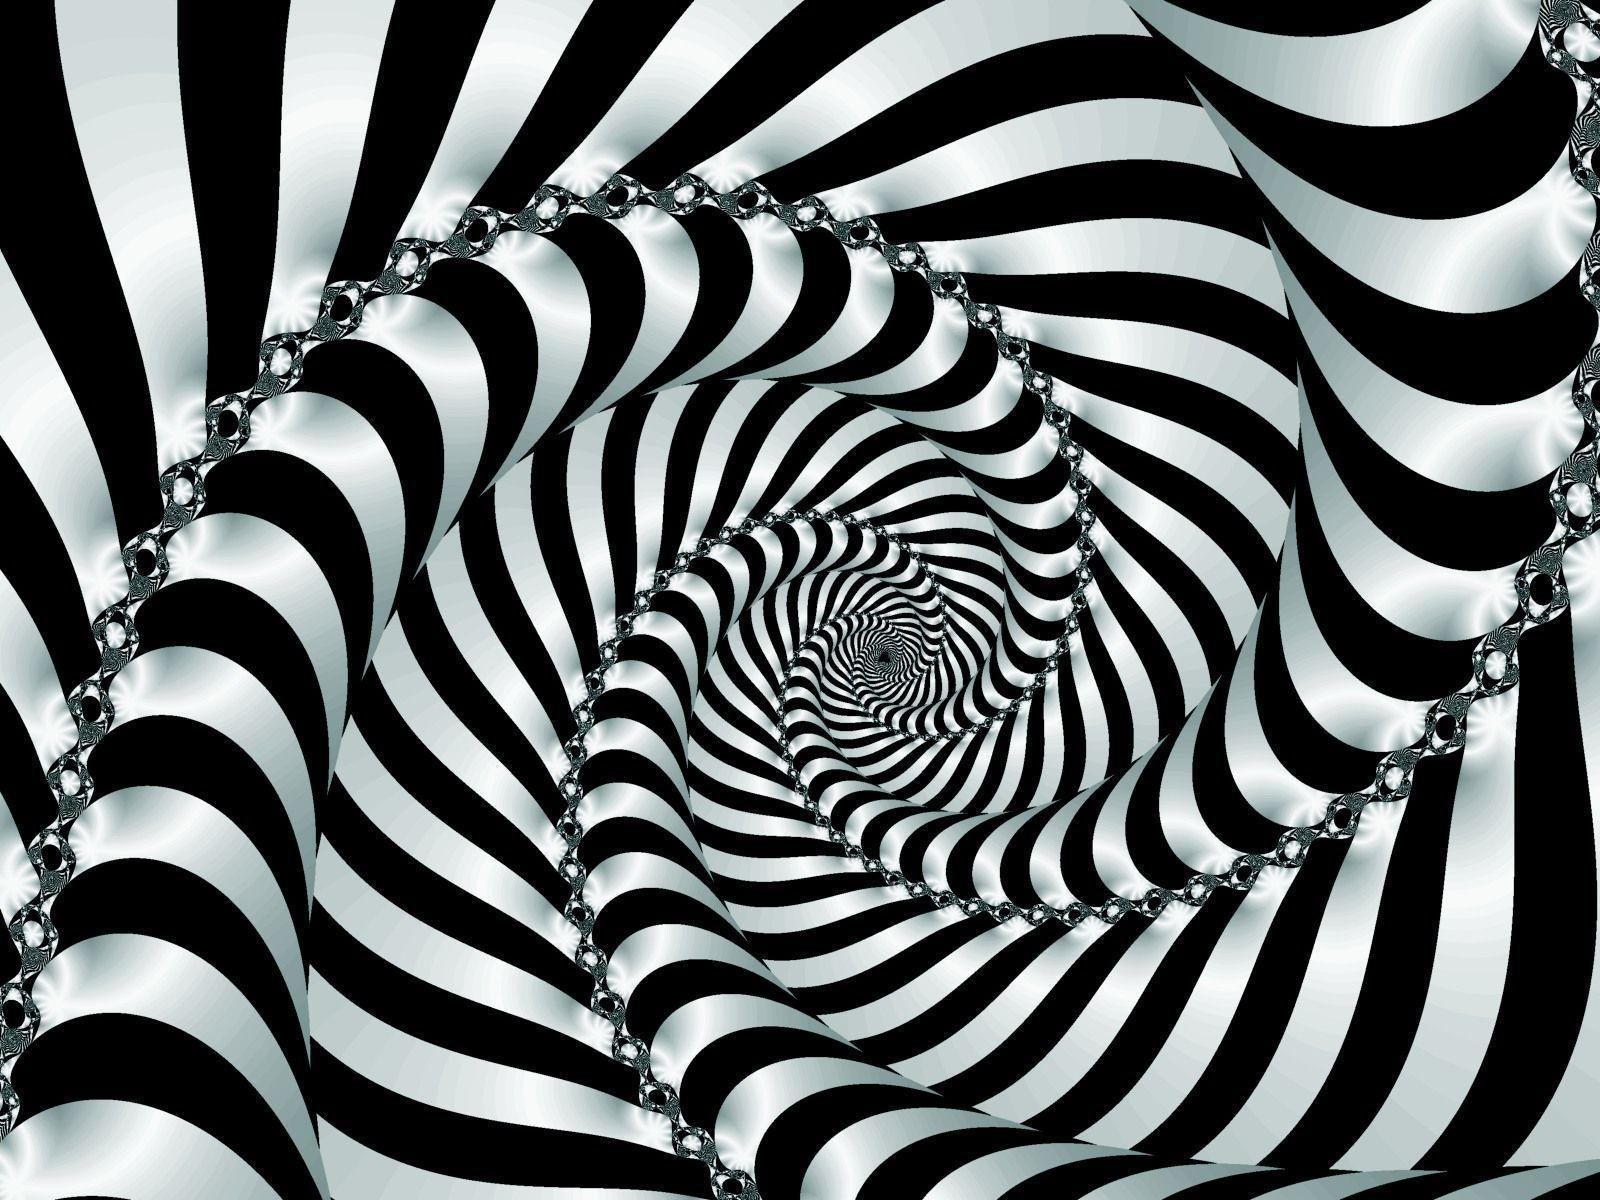 Optical Illusion Wallpapers For Home · Optical Illusions Wallpapers